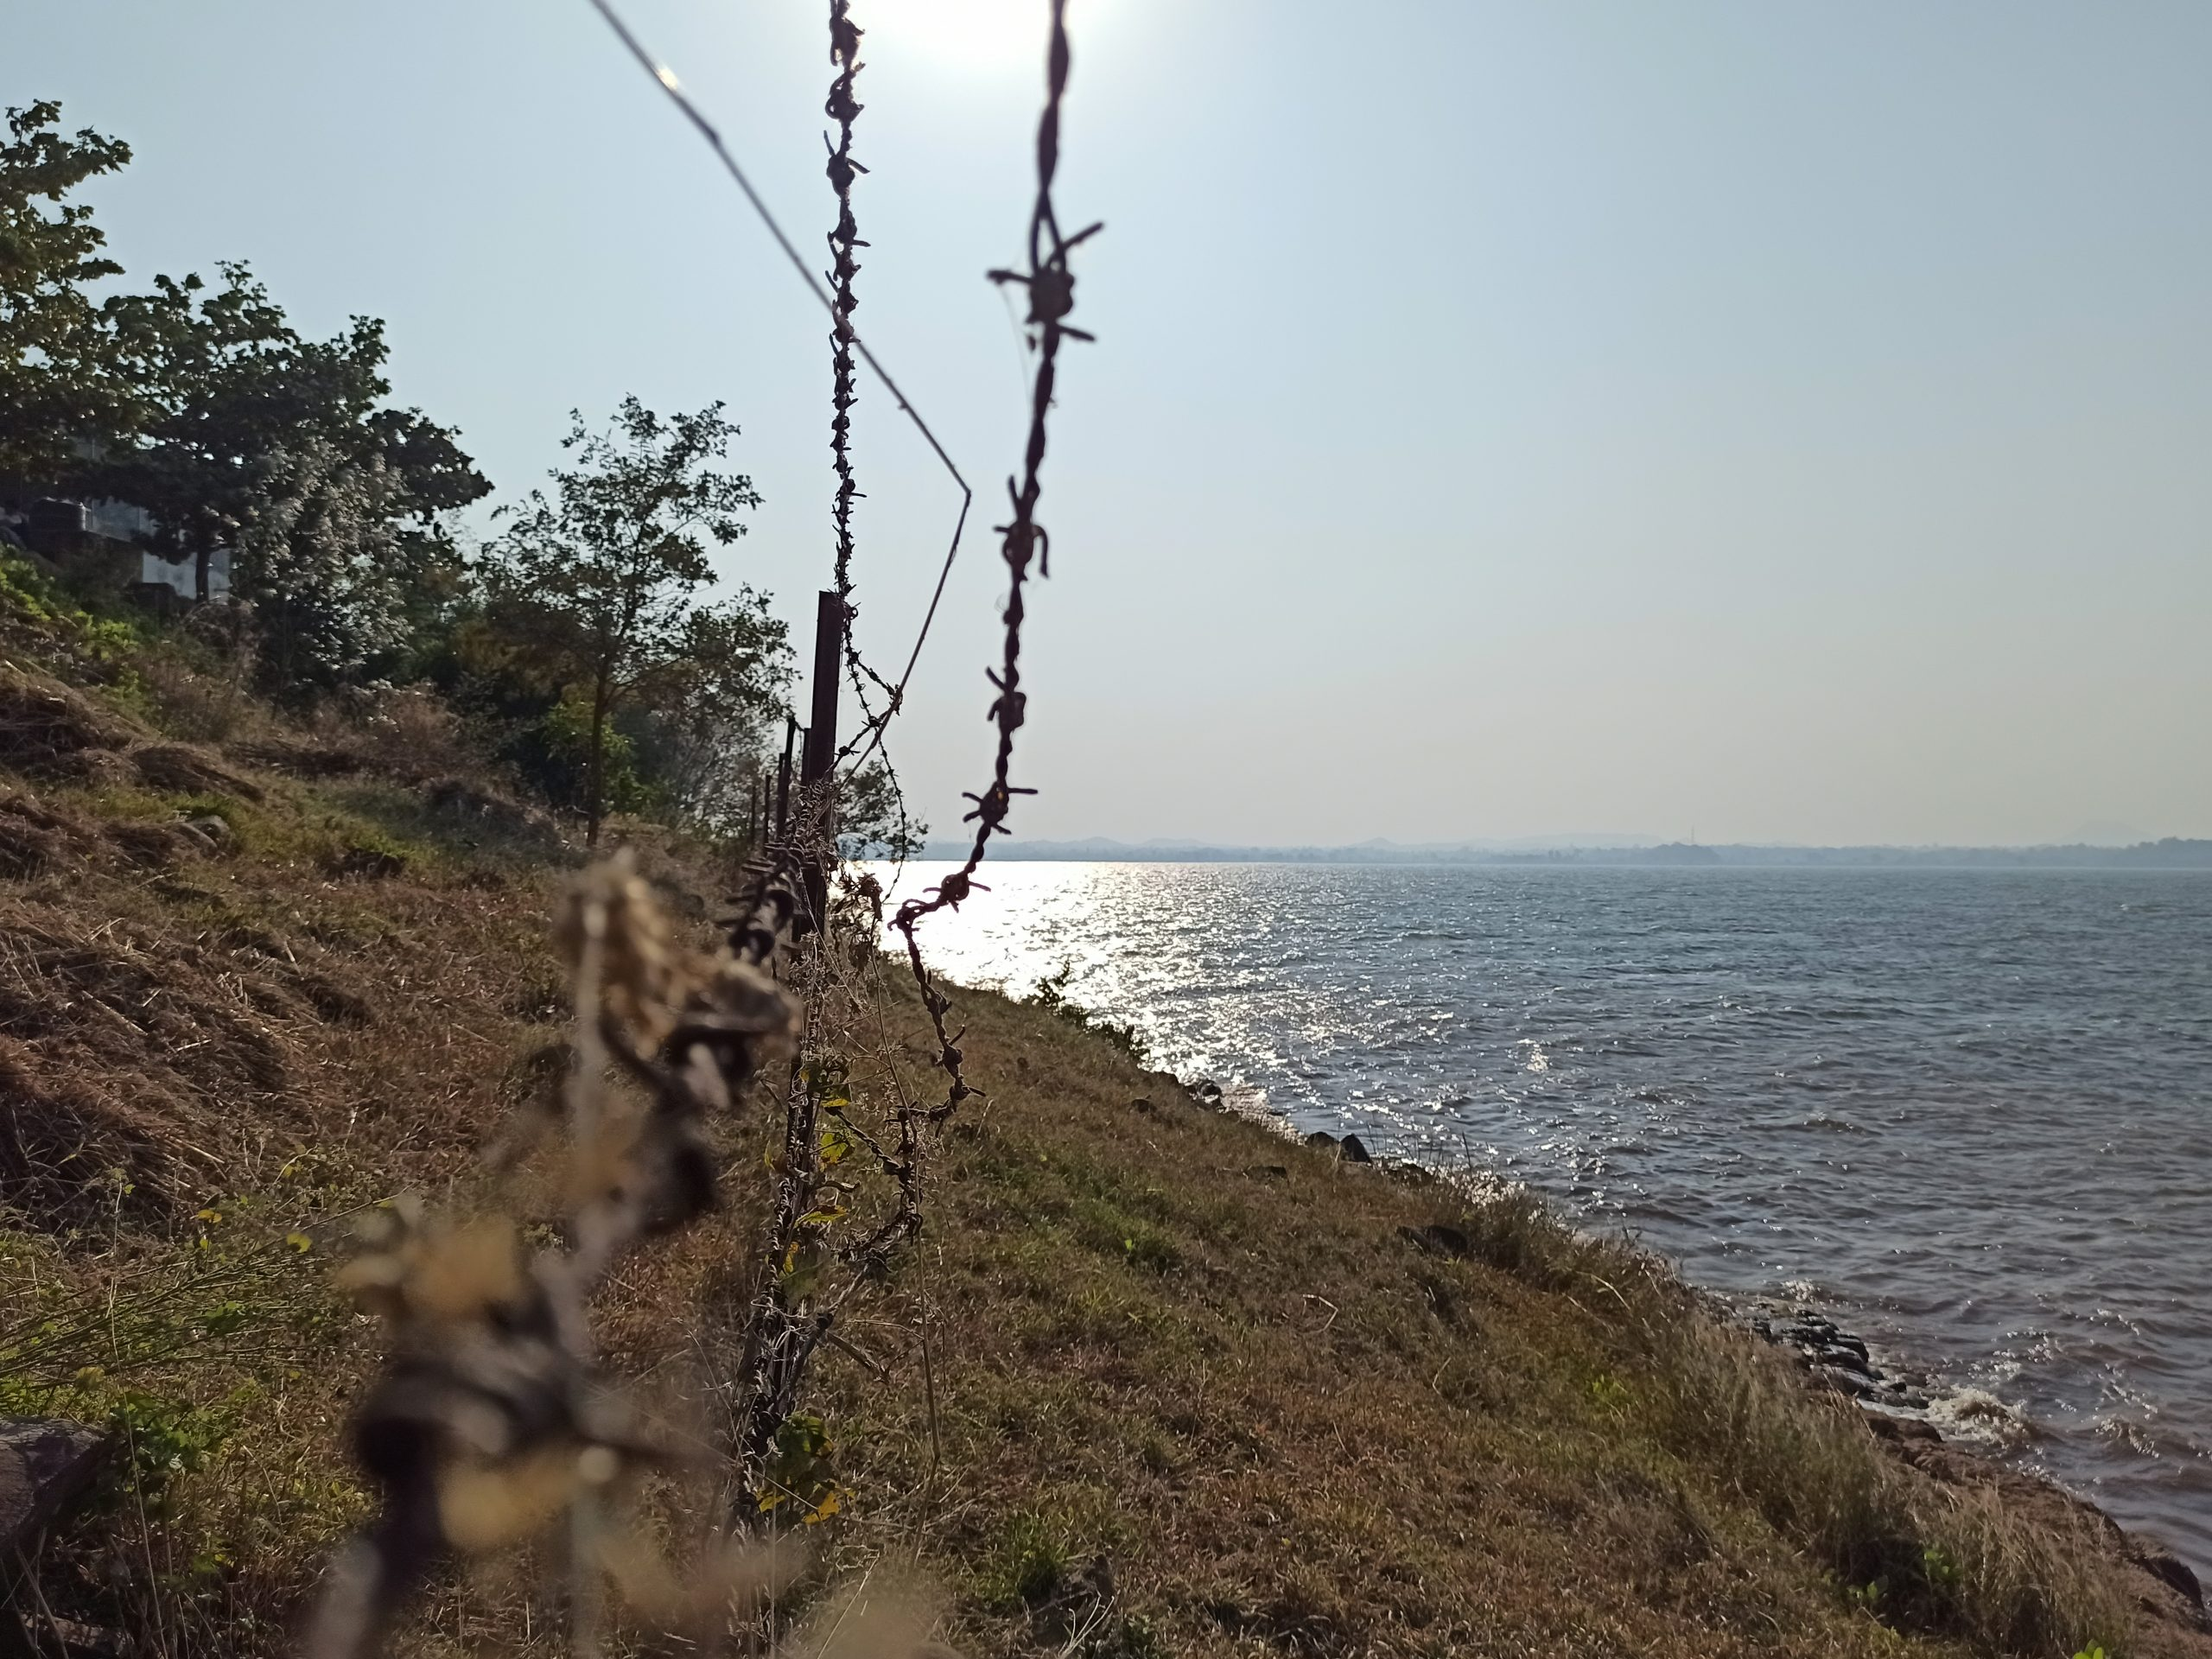 Wire fencing on a beach